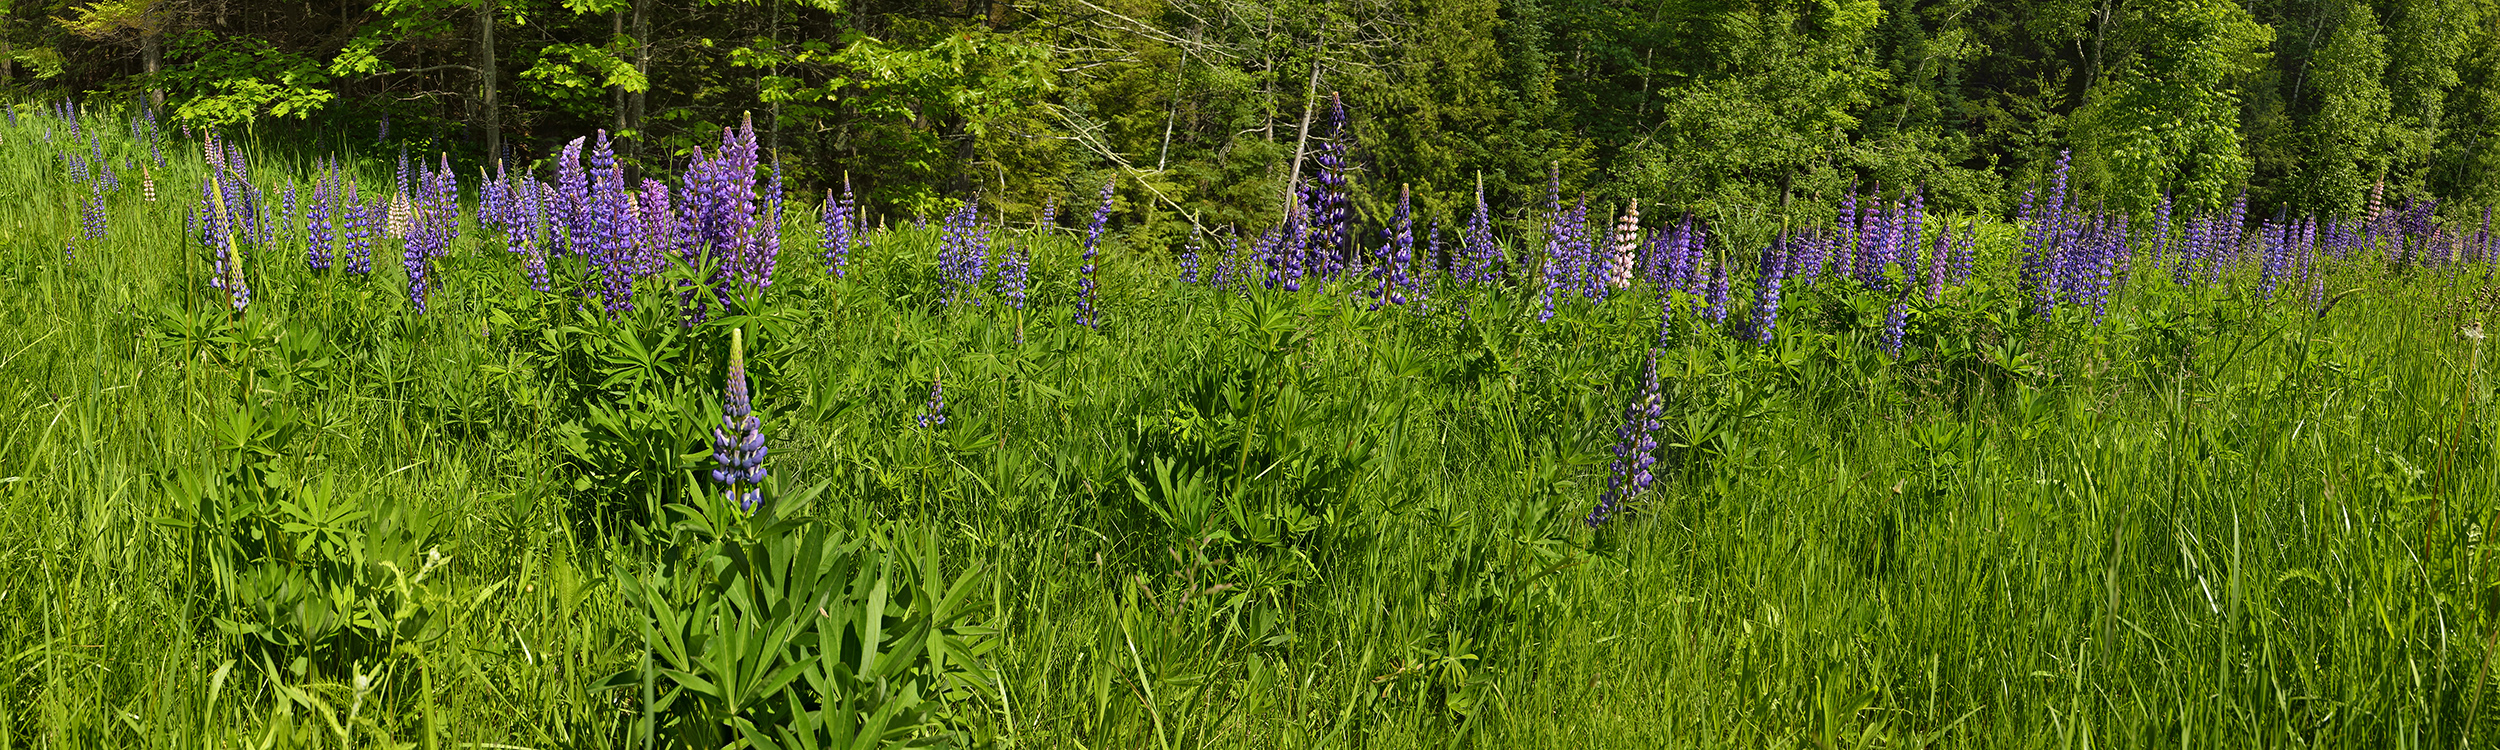 Lupine in Field near Lake Superior